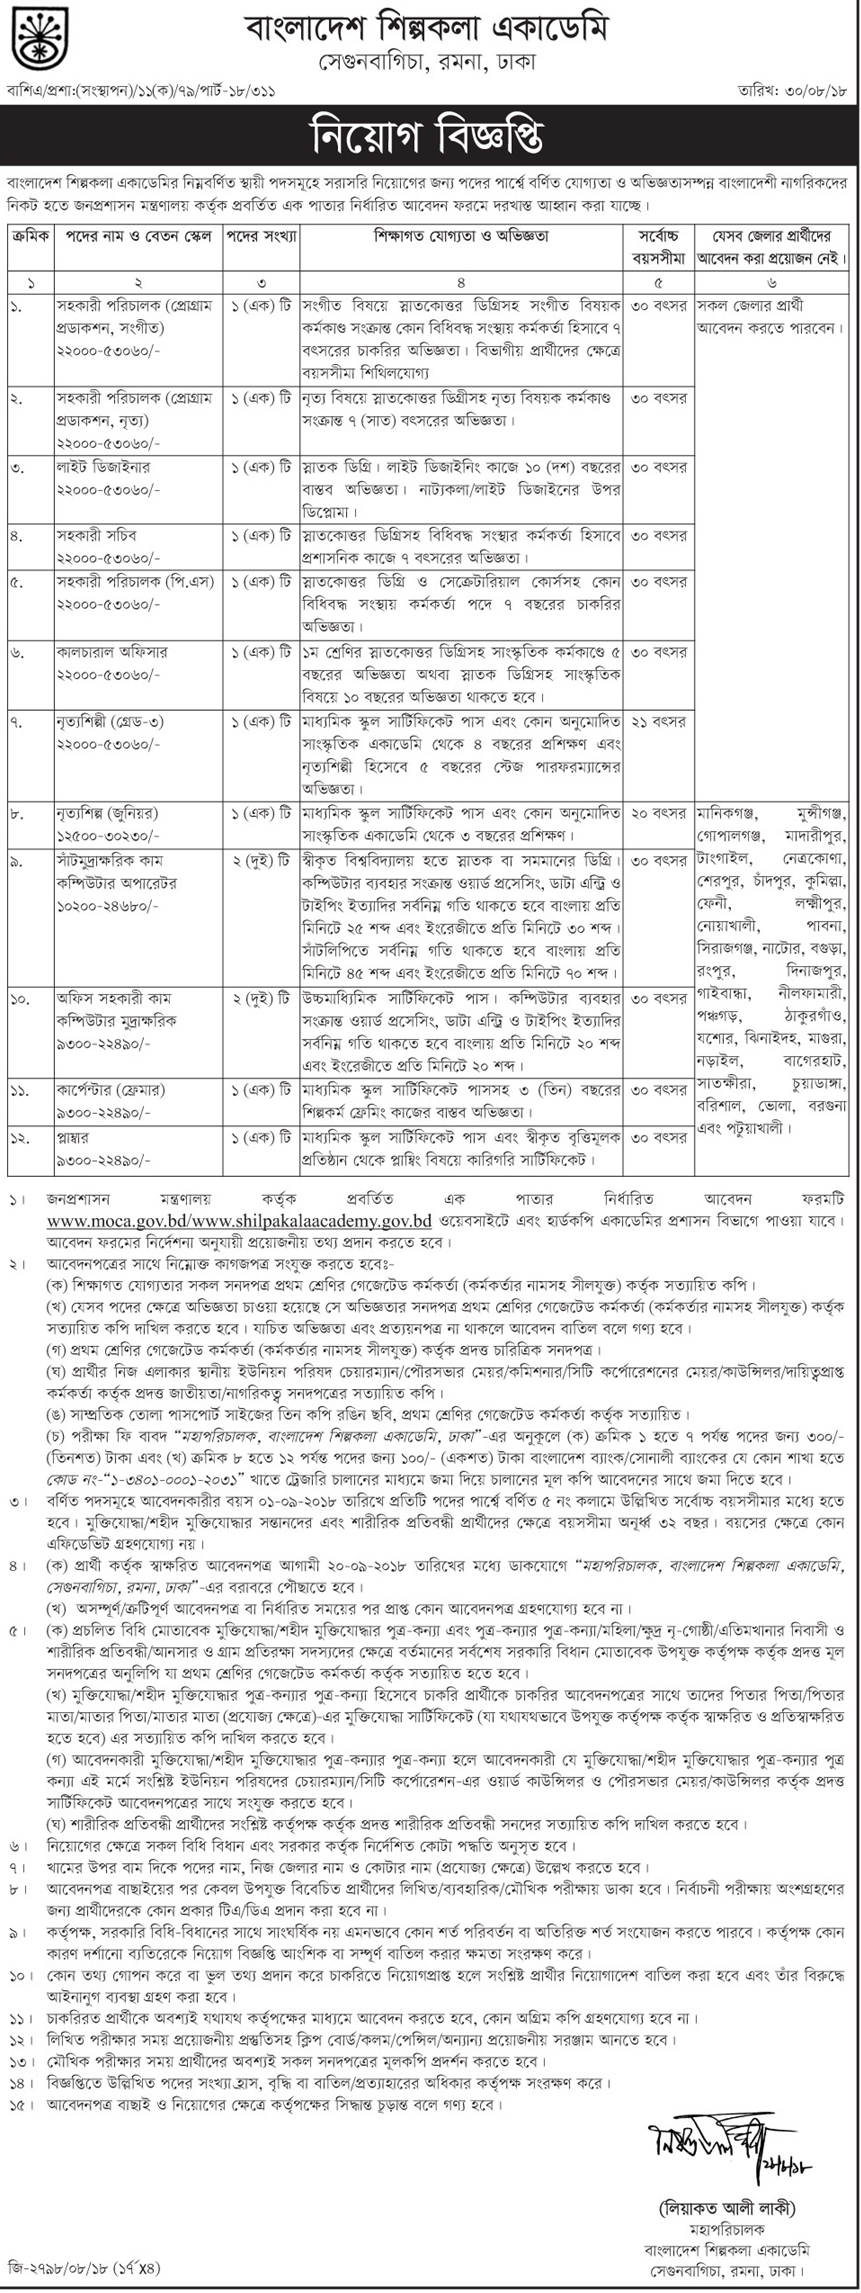 Bangladesh Shilpakala Academy job circular & Apply Instruction -2018